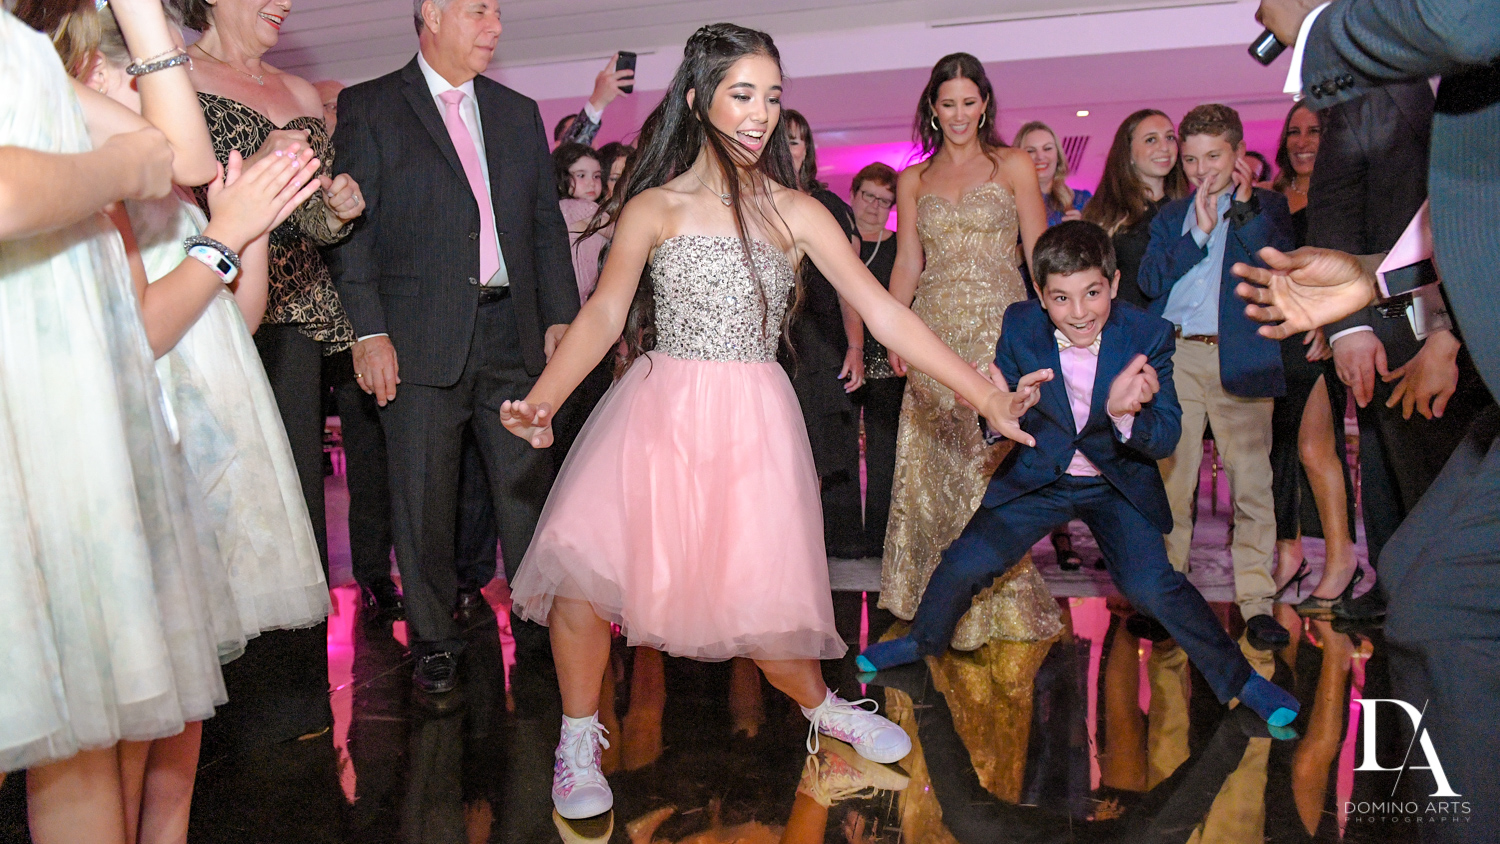 Fun dancing at party at Bat Mitzvah at Saint Andrews Country Club South Florida by Domino Arts Photography